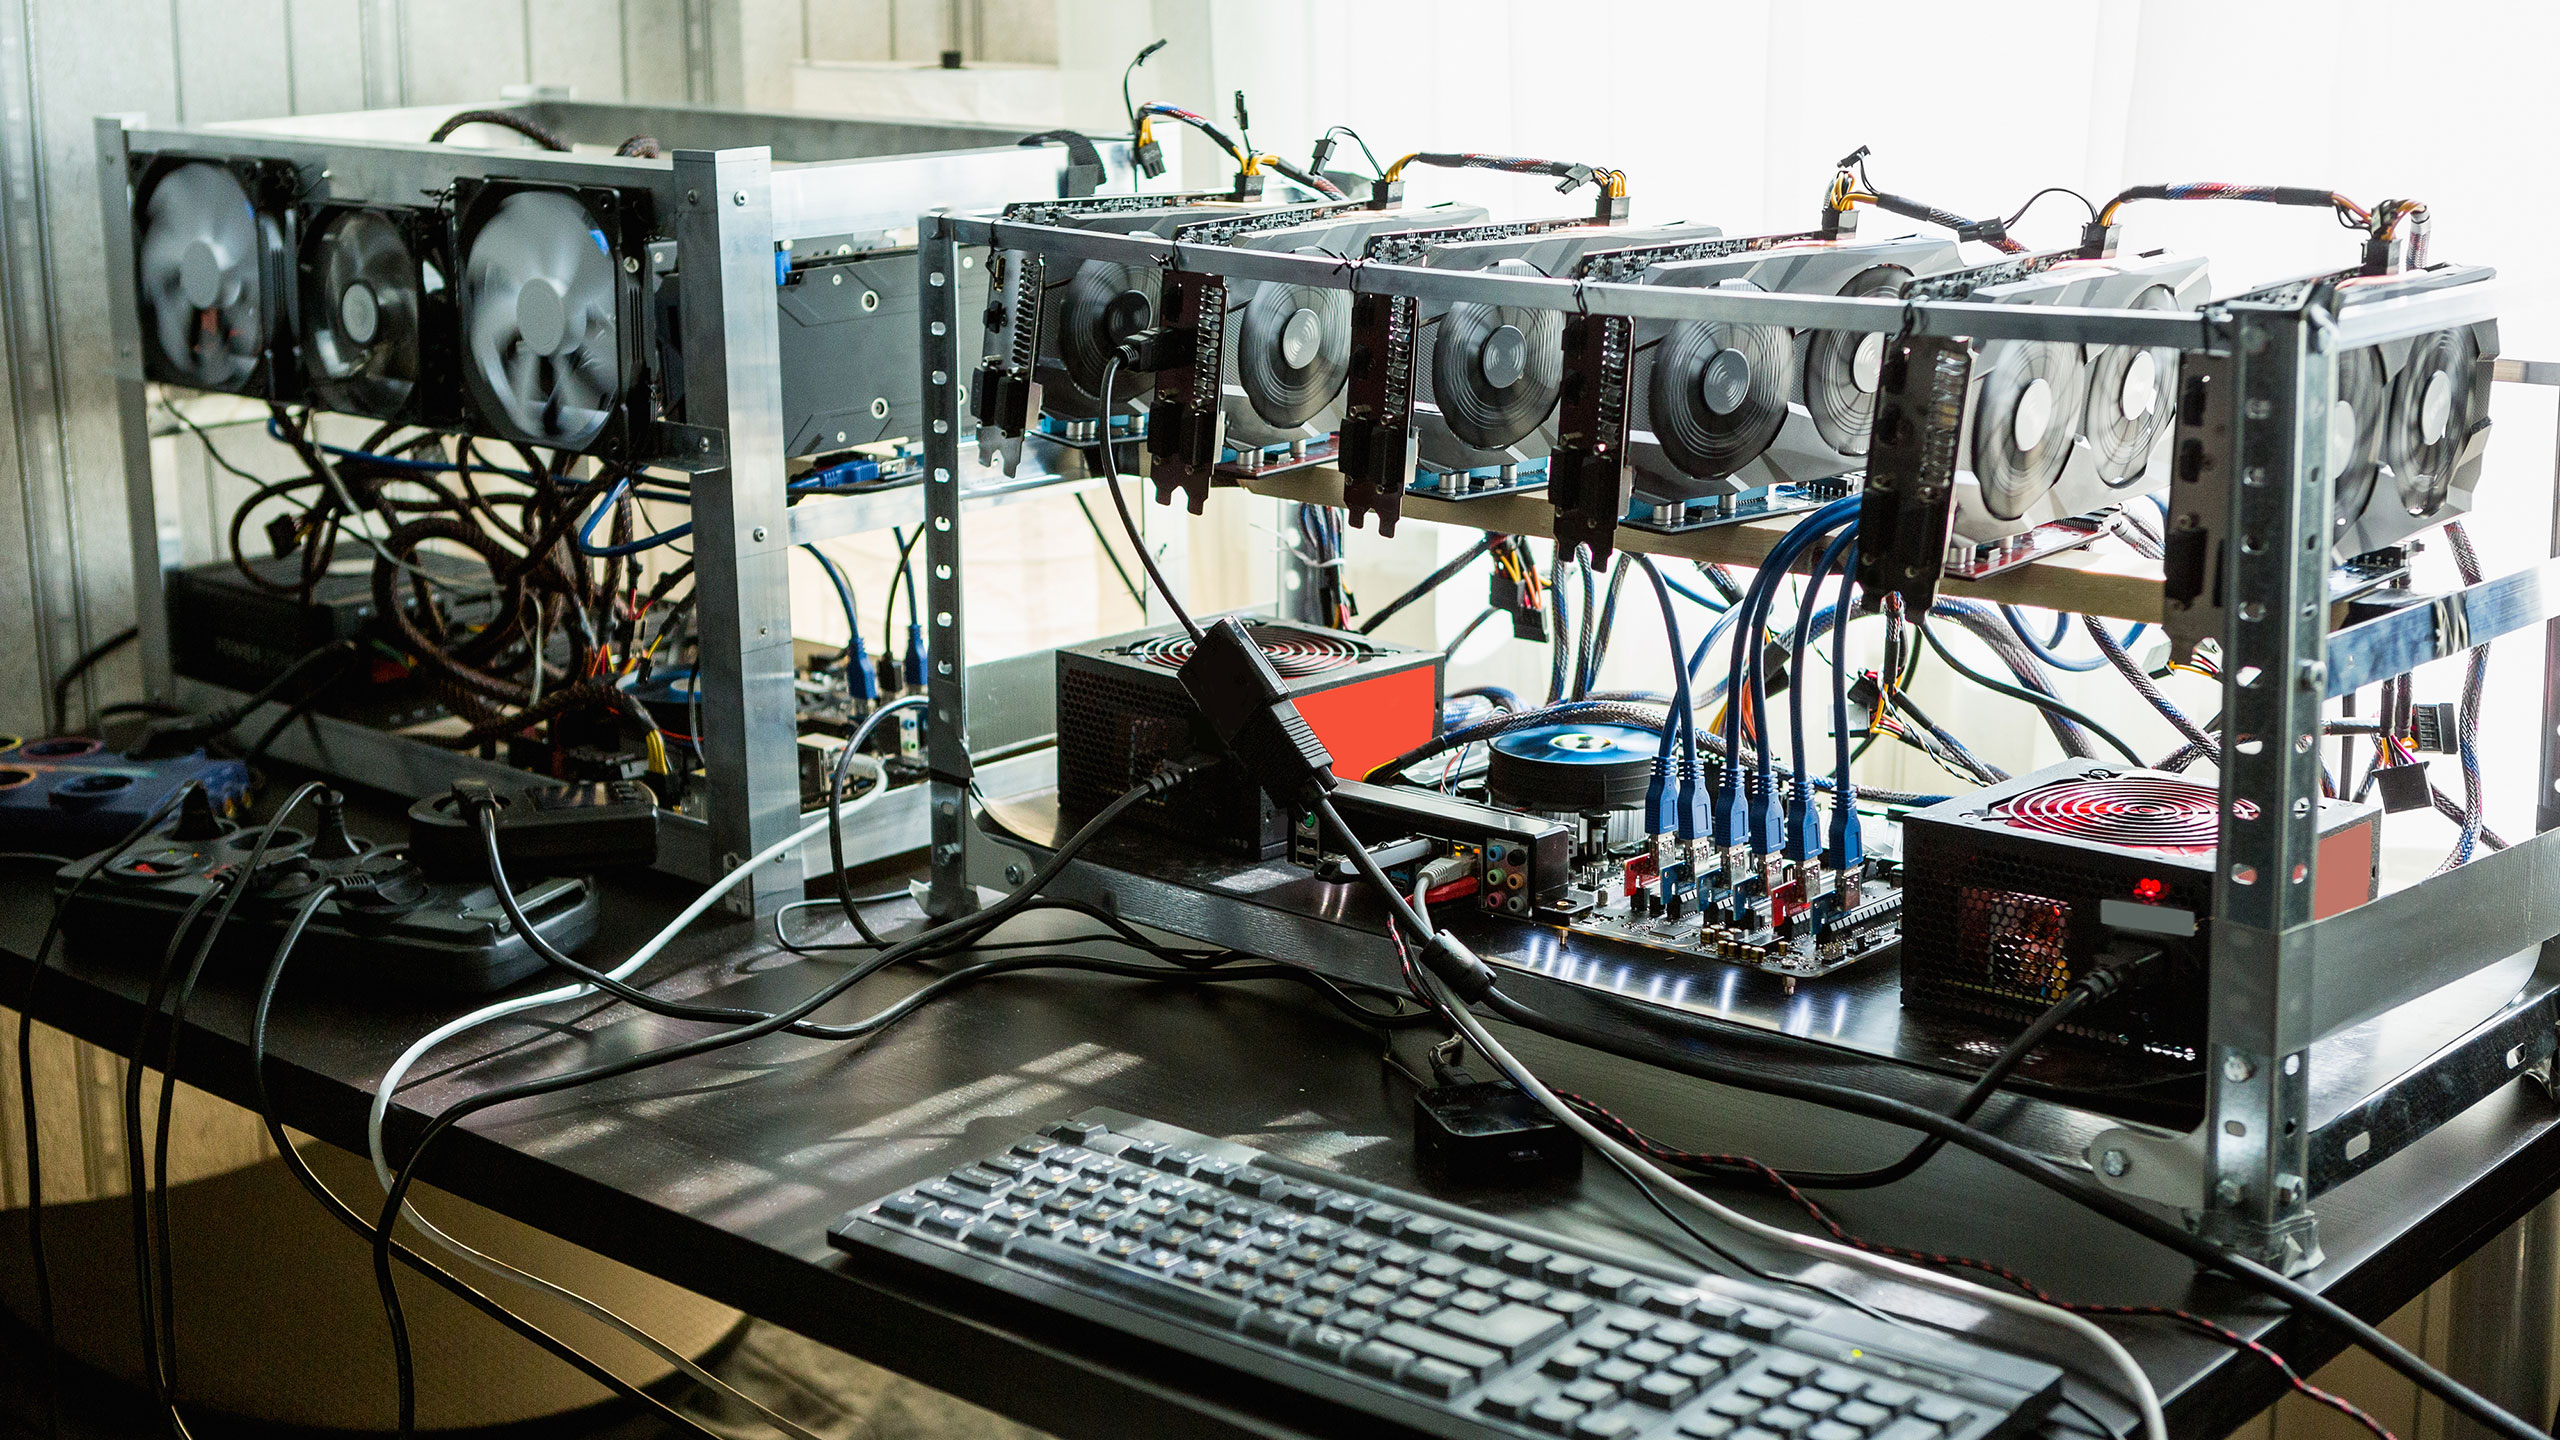 cryptocurrency mining drives gpu prices up